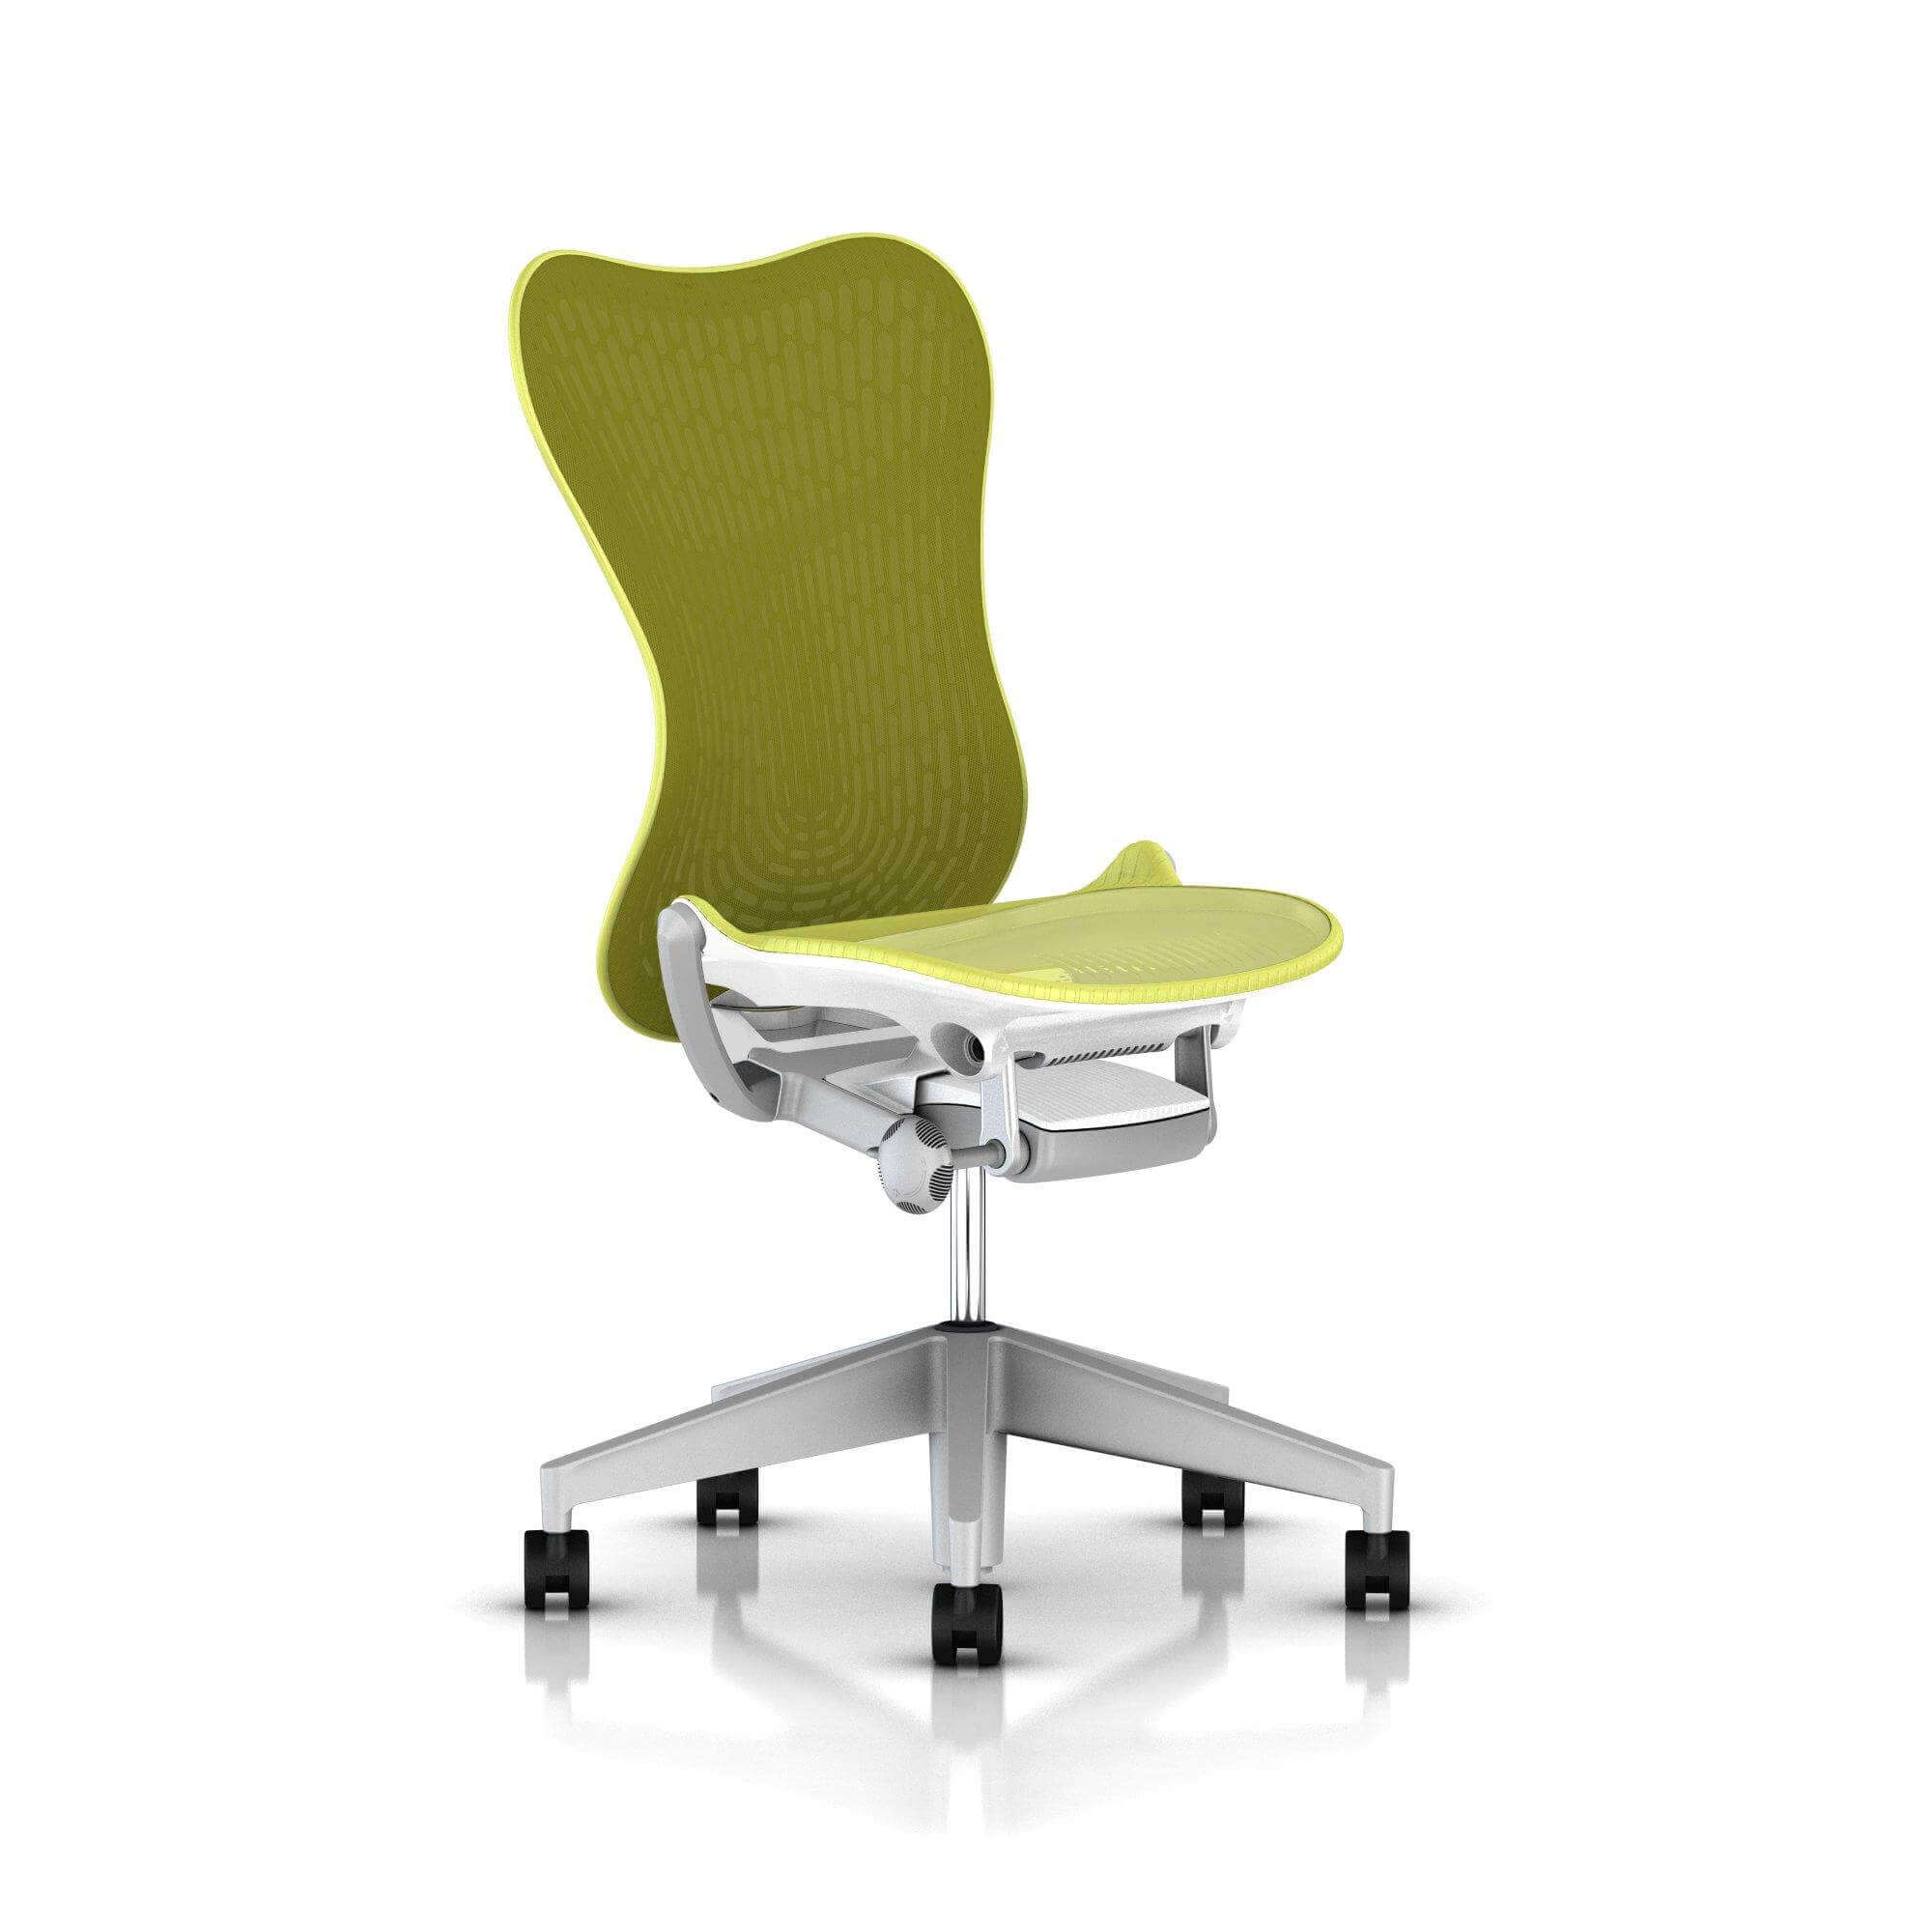 der Mirra 2 Base-Line in der Farbe Lime Green